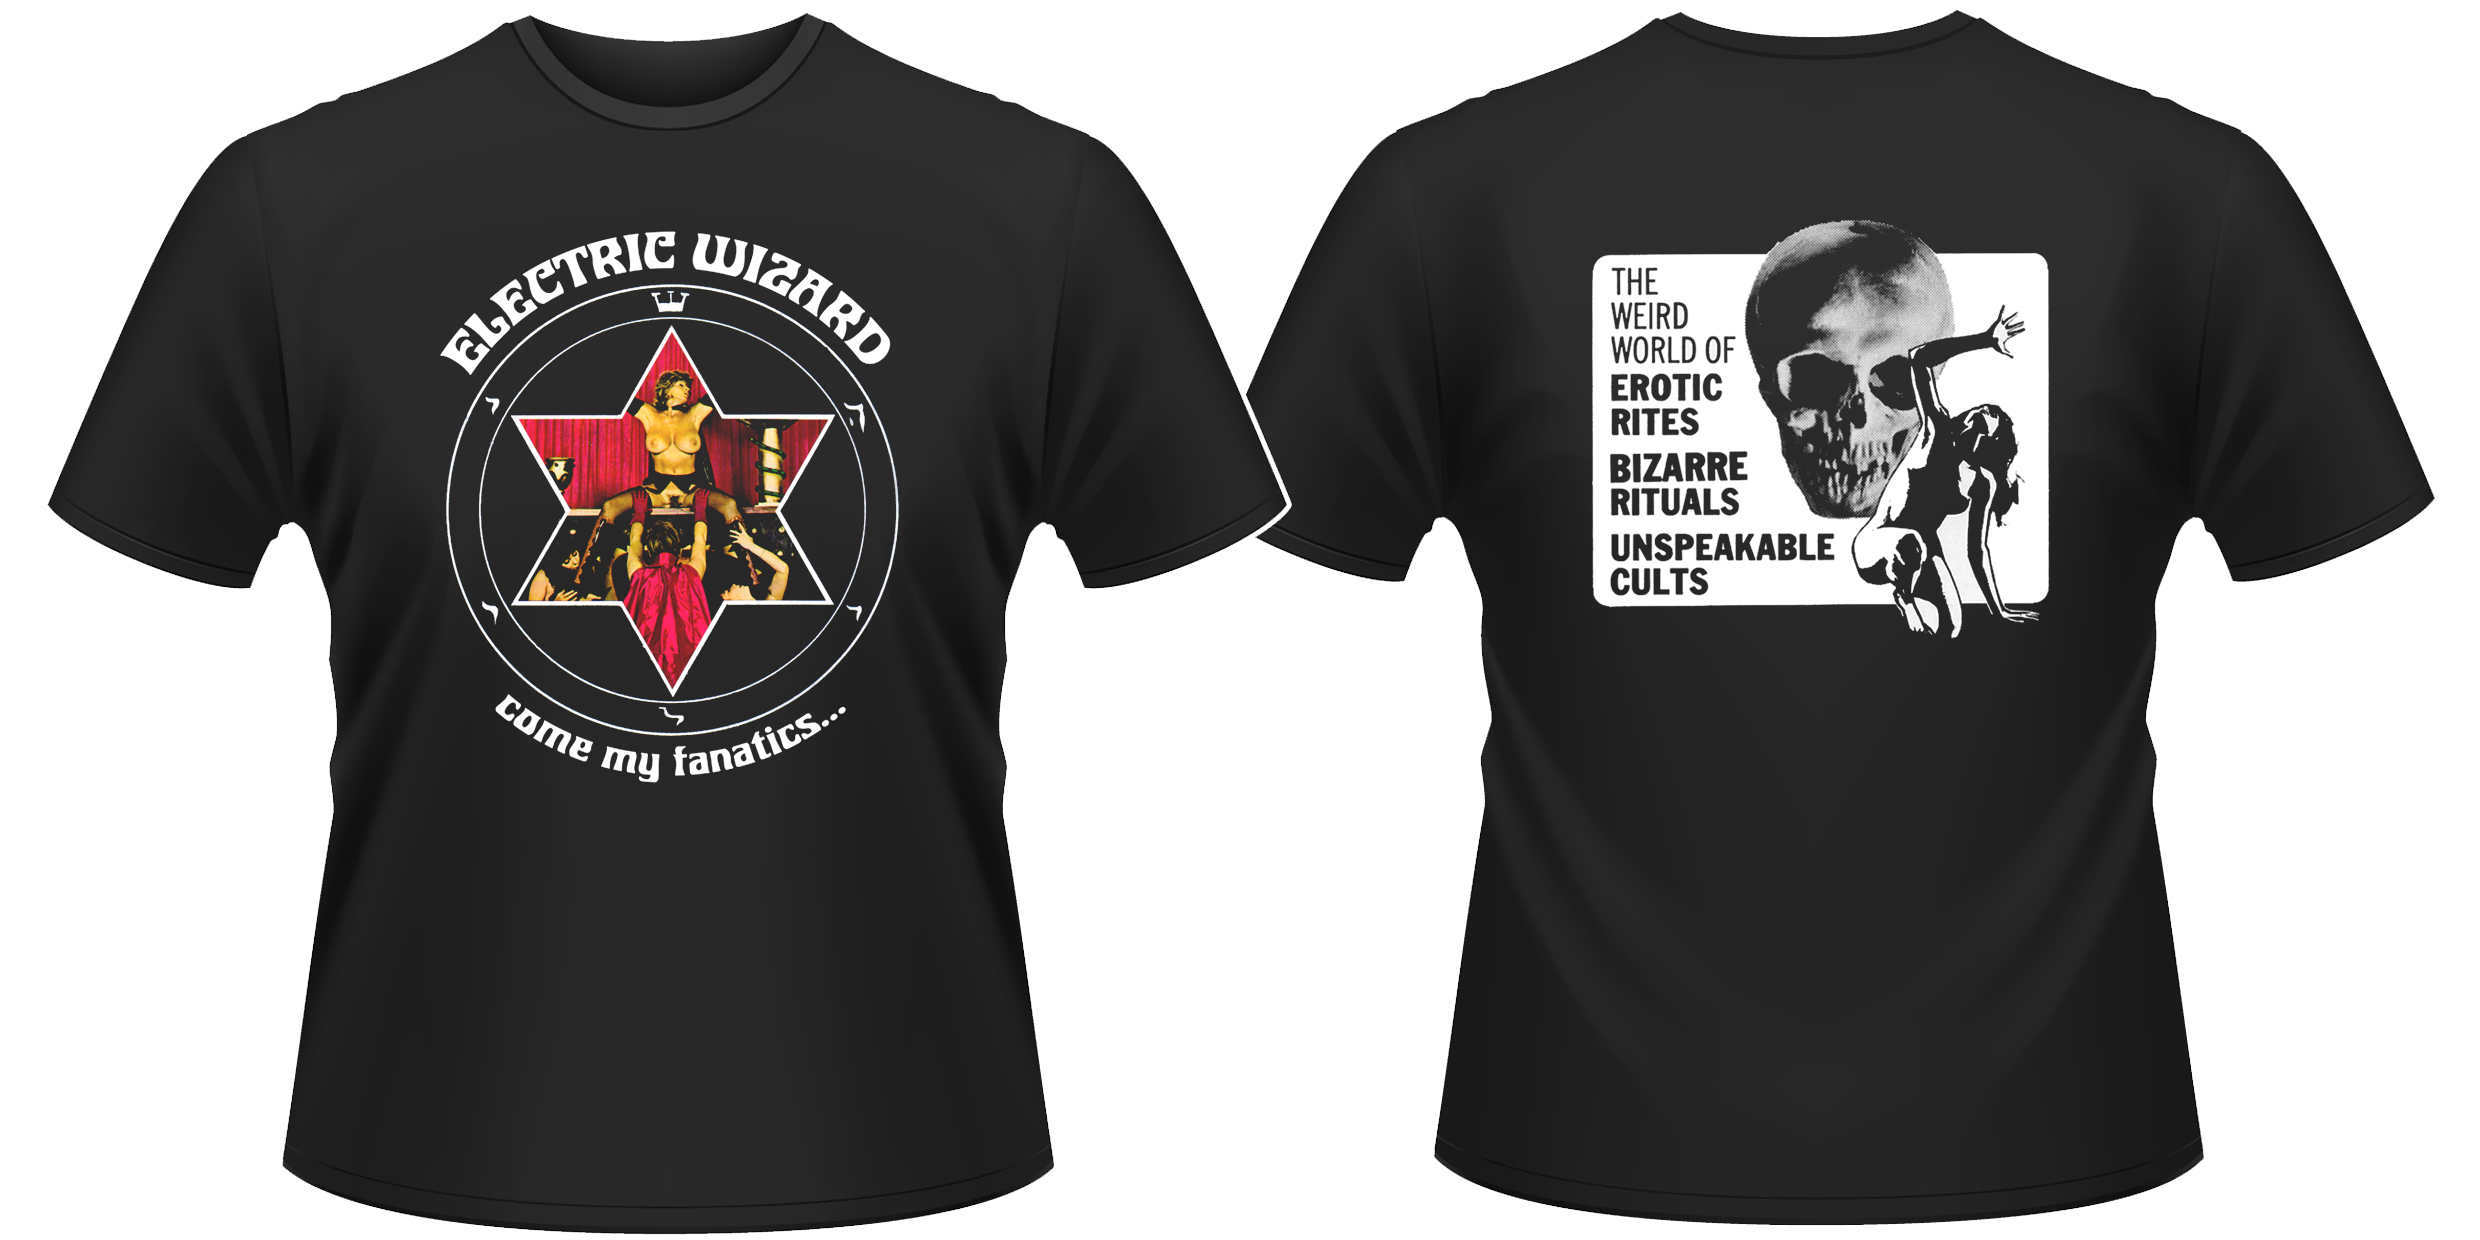 Details about Electric Wizard 'Come My Fanatics' T-Shirt - NEW & OFFICIAL